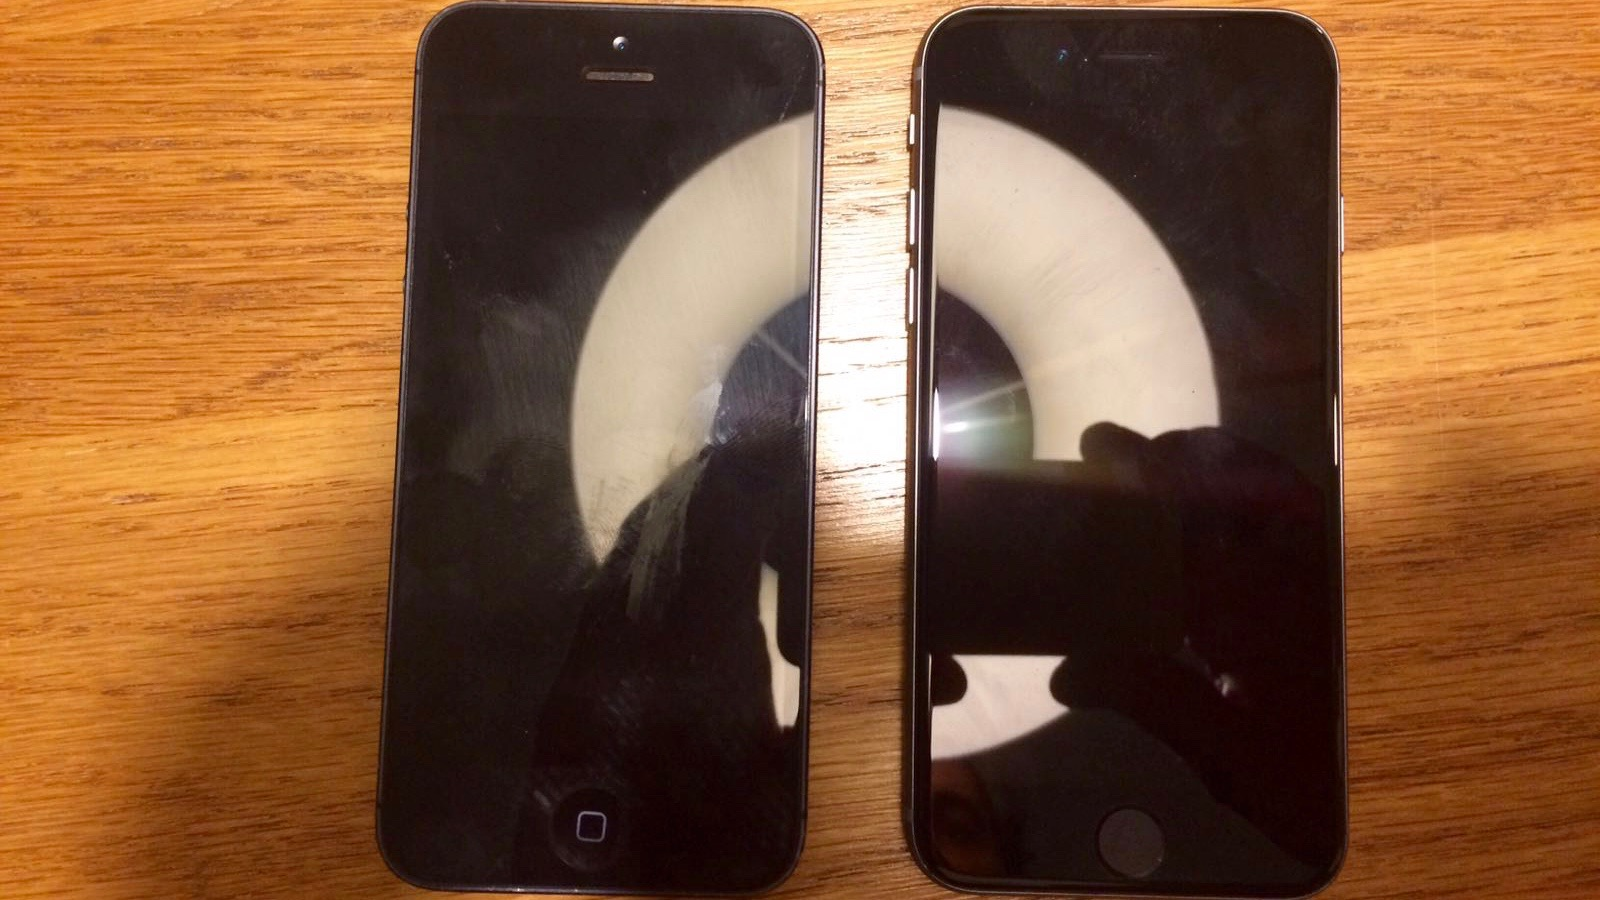 iPhone 5 and 5se